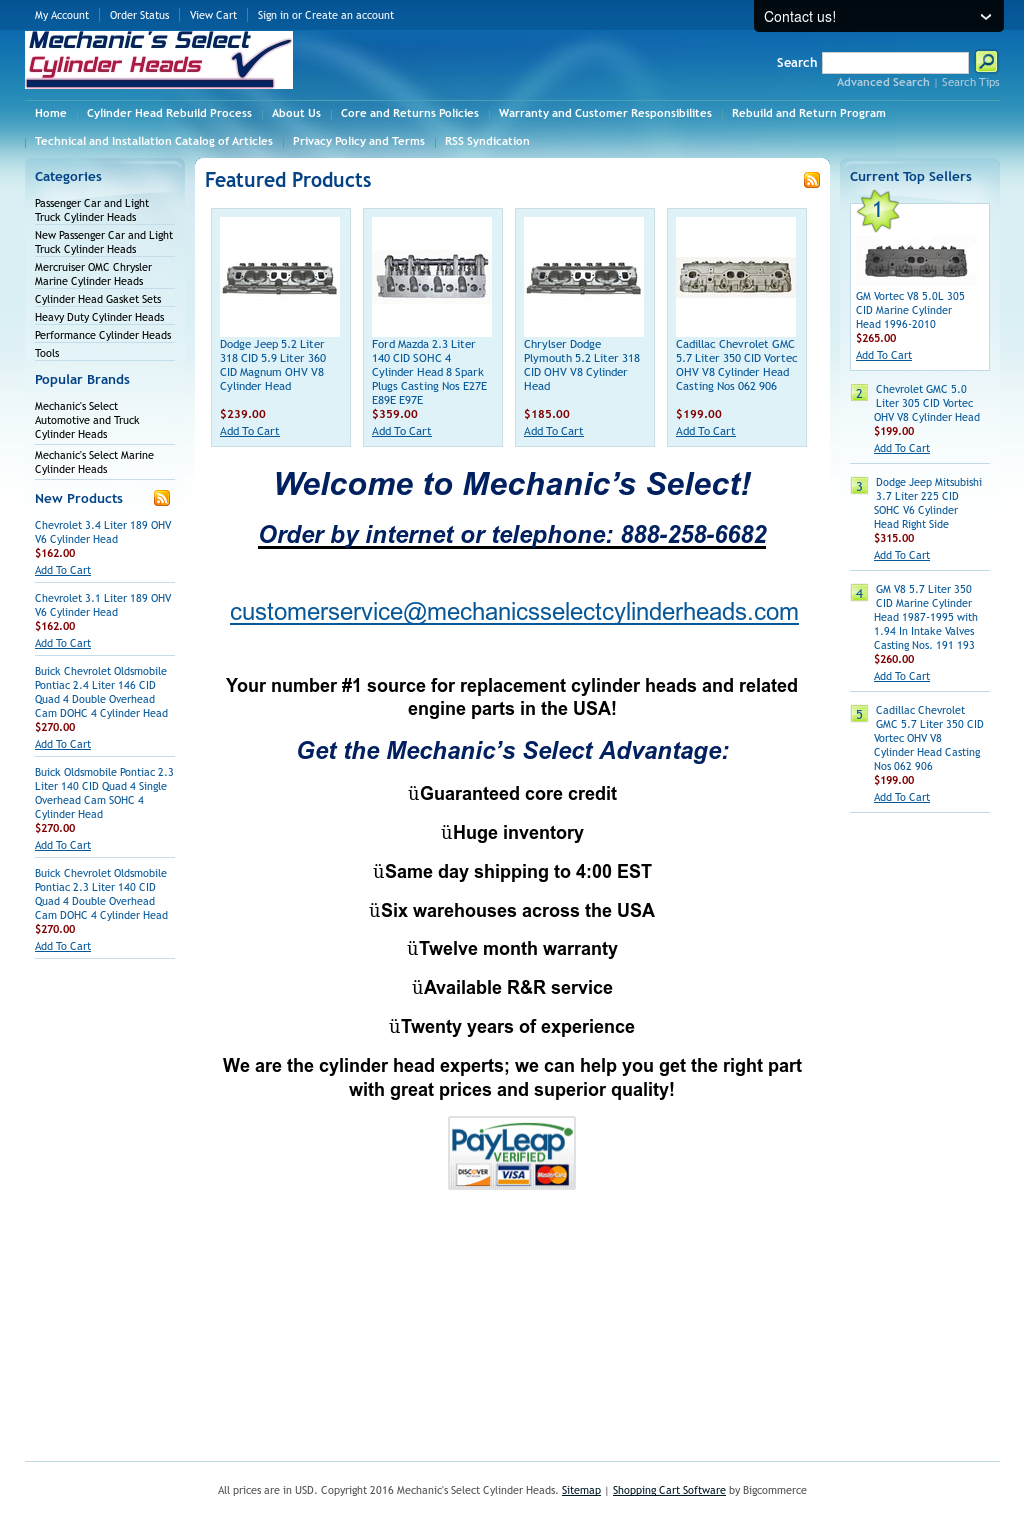 Mechanic's Select Cylinder Heads Competitors, Revenue and Employees